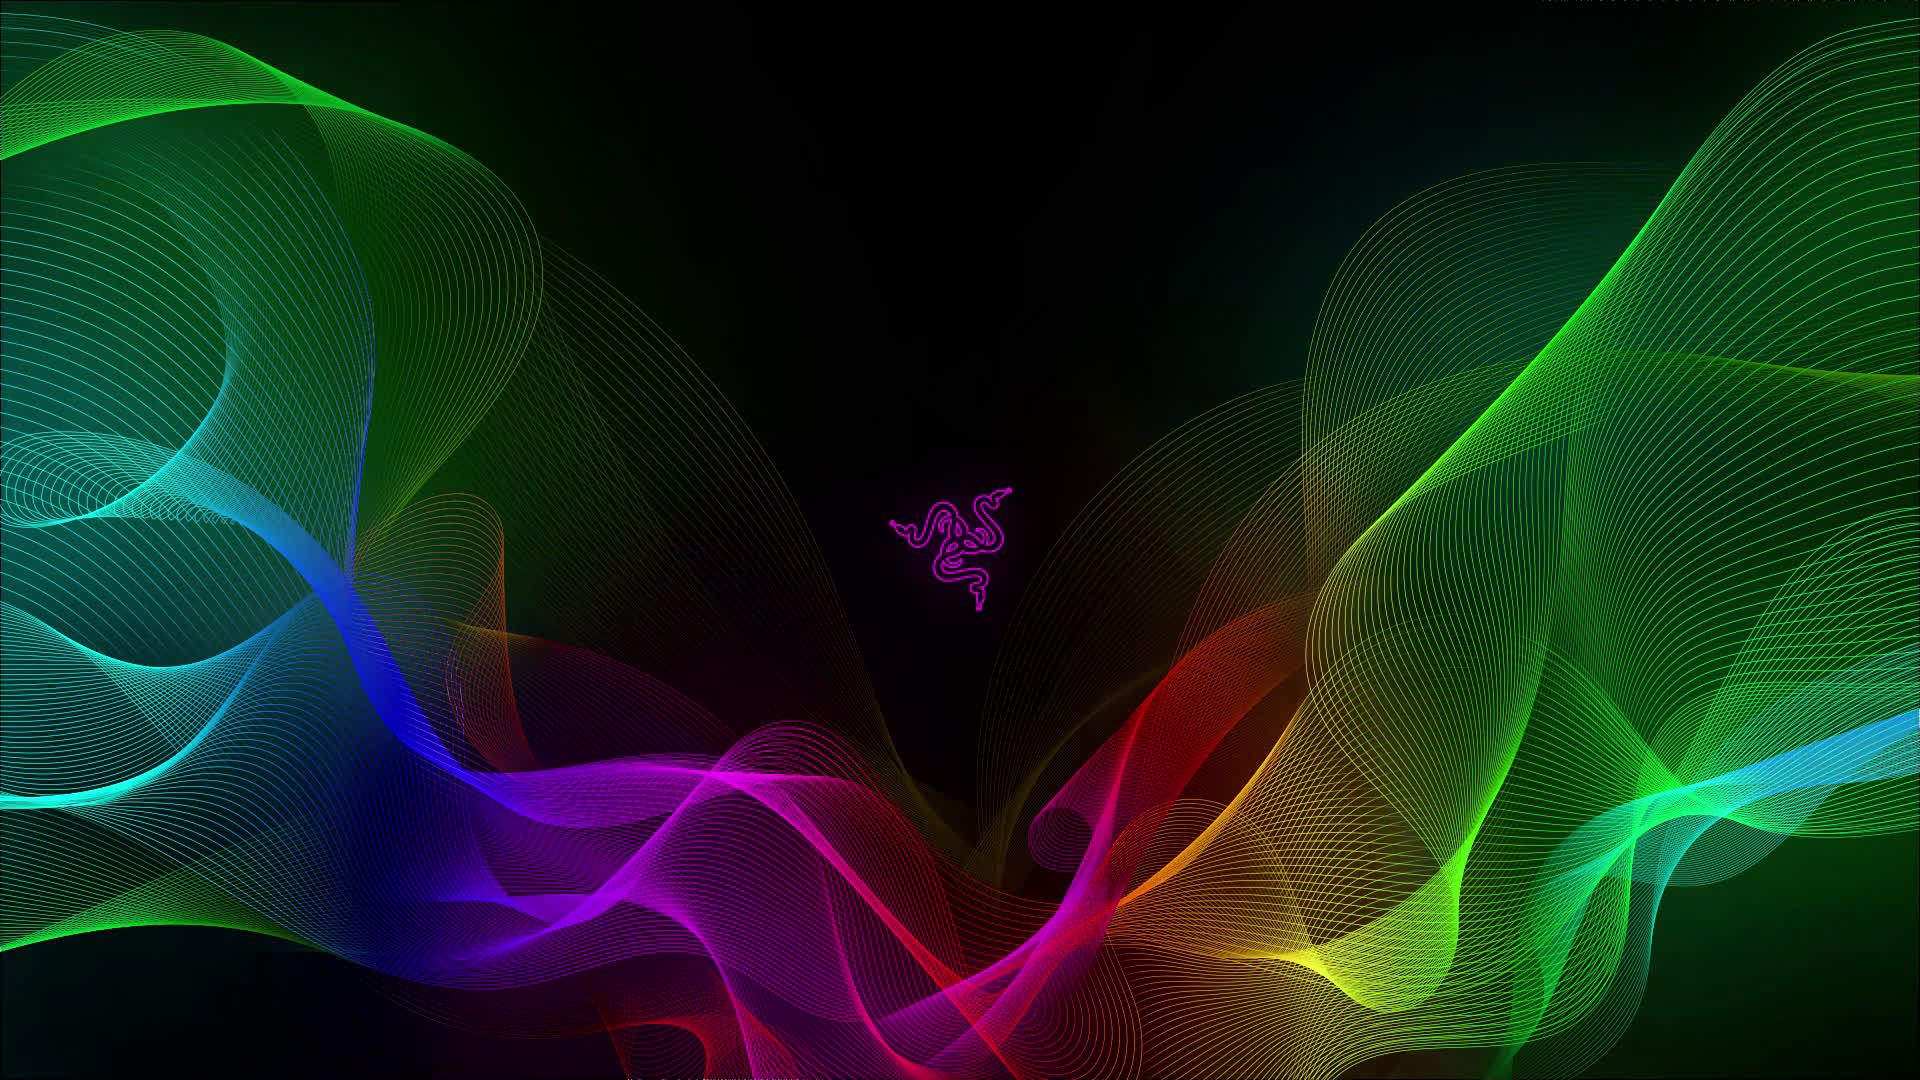 Razer Live Wallpaper Group 32 Download For Free Live Wallpapers Live Wallpaper For Pc Wallpaper